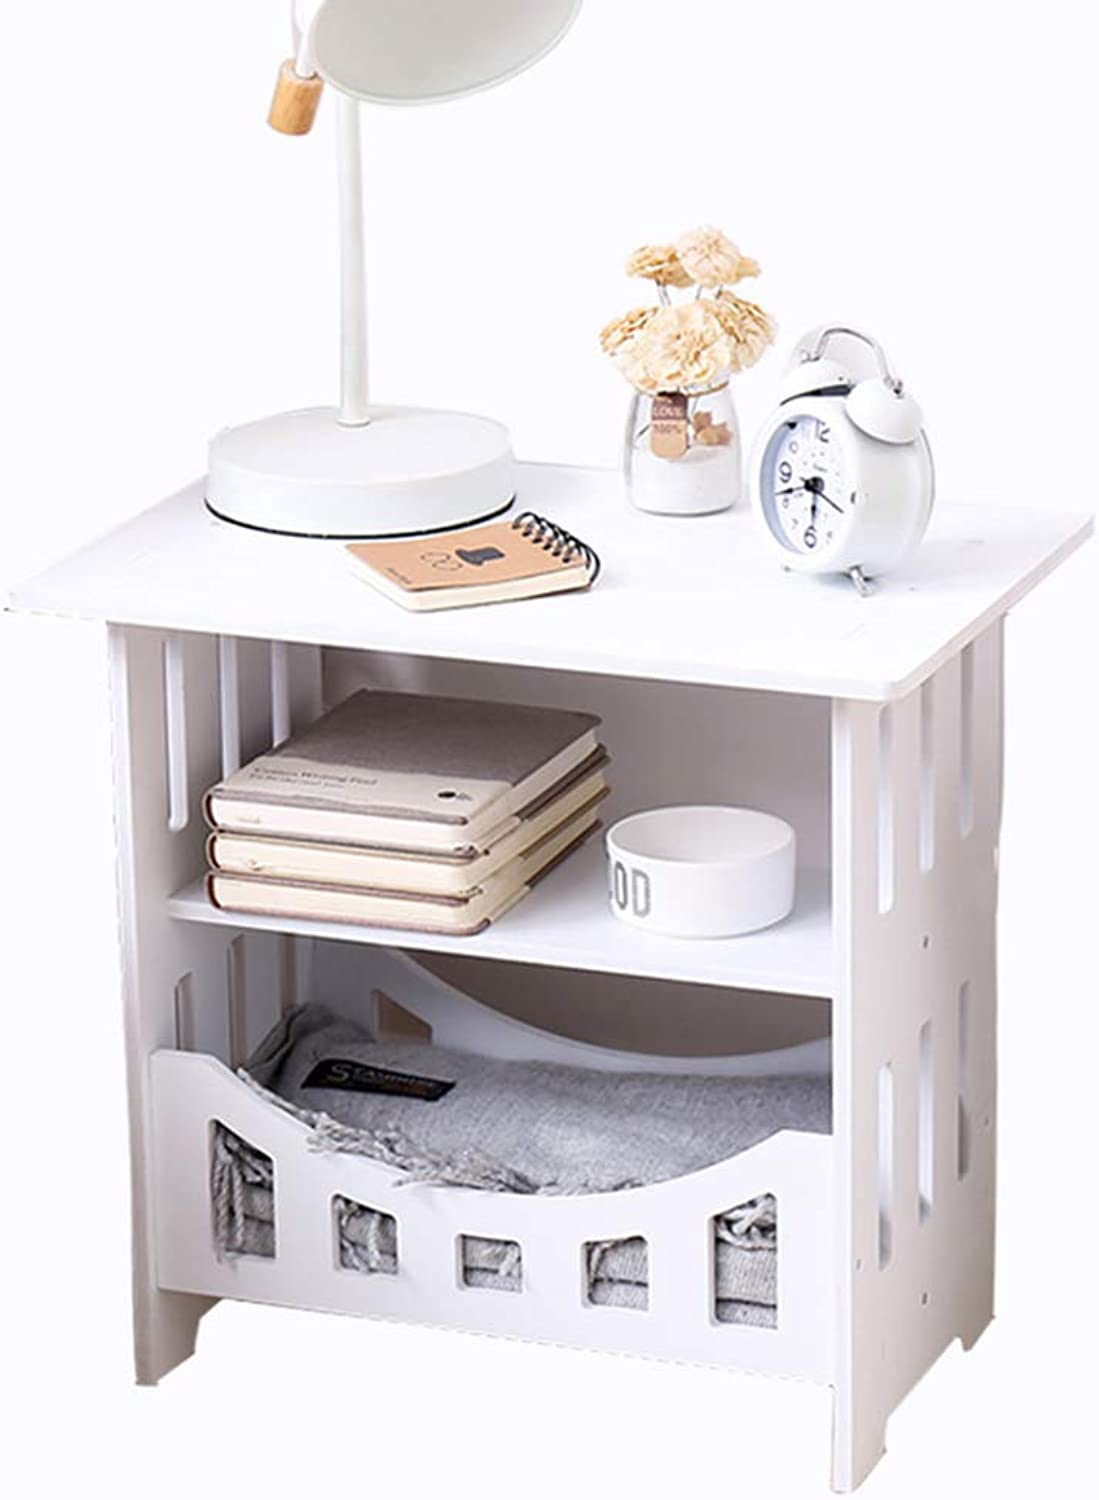 Coffee Table Storage Cabinet, Simple Small Table, Multi-Functional Storage Hollow-Carved Design Suitable for Sofa Side Bedroom Bedside